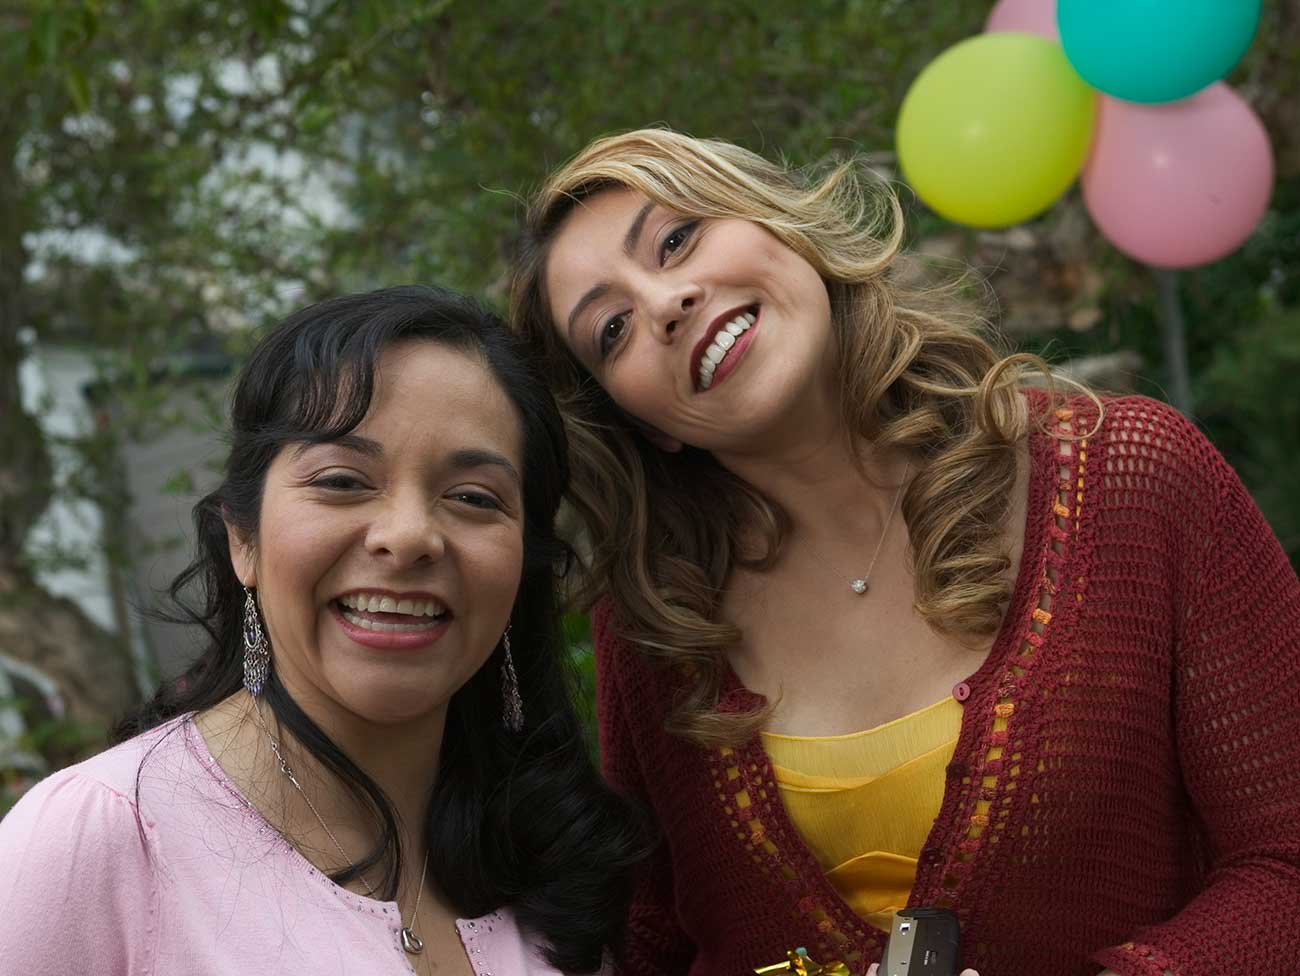 2 women in an outdoor setting looking at the camera and smiling with balloons in the background